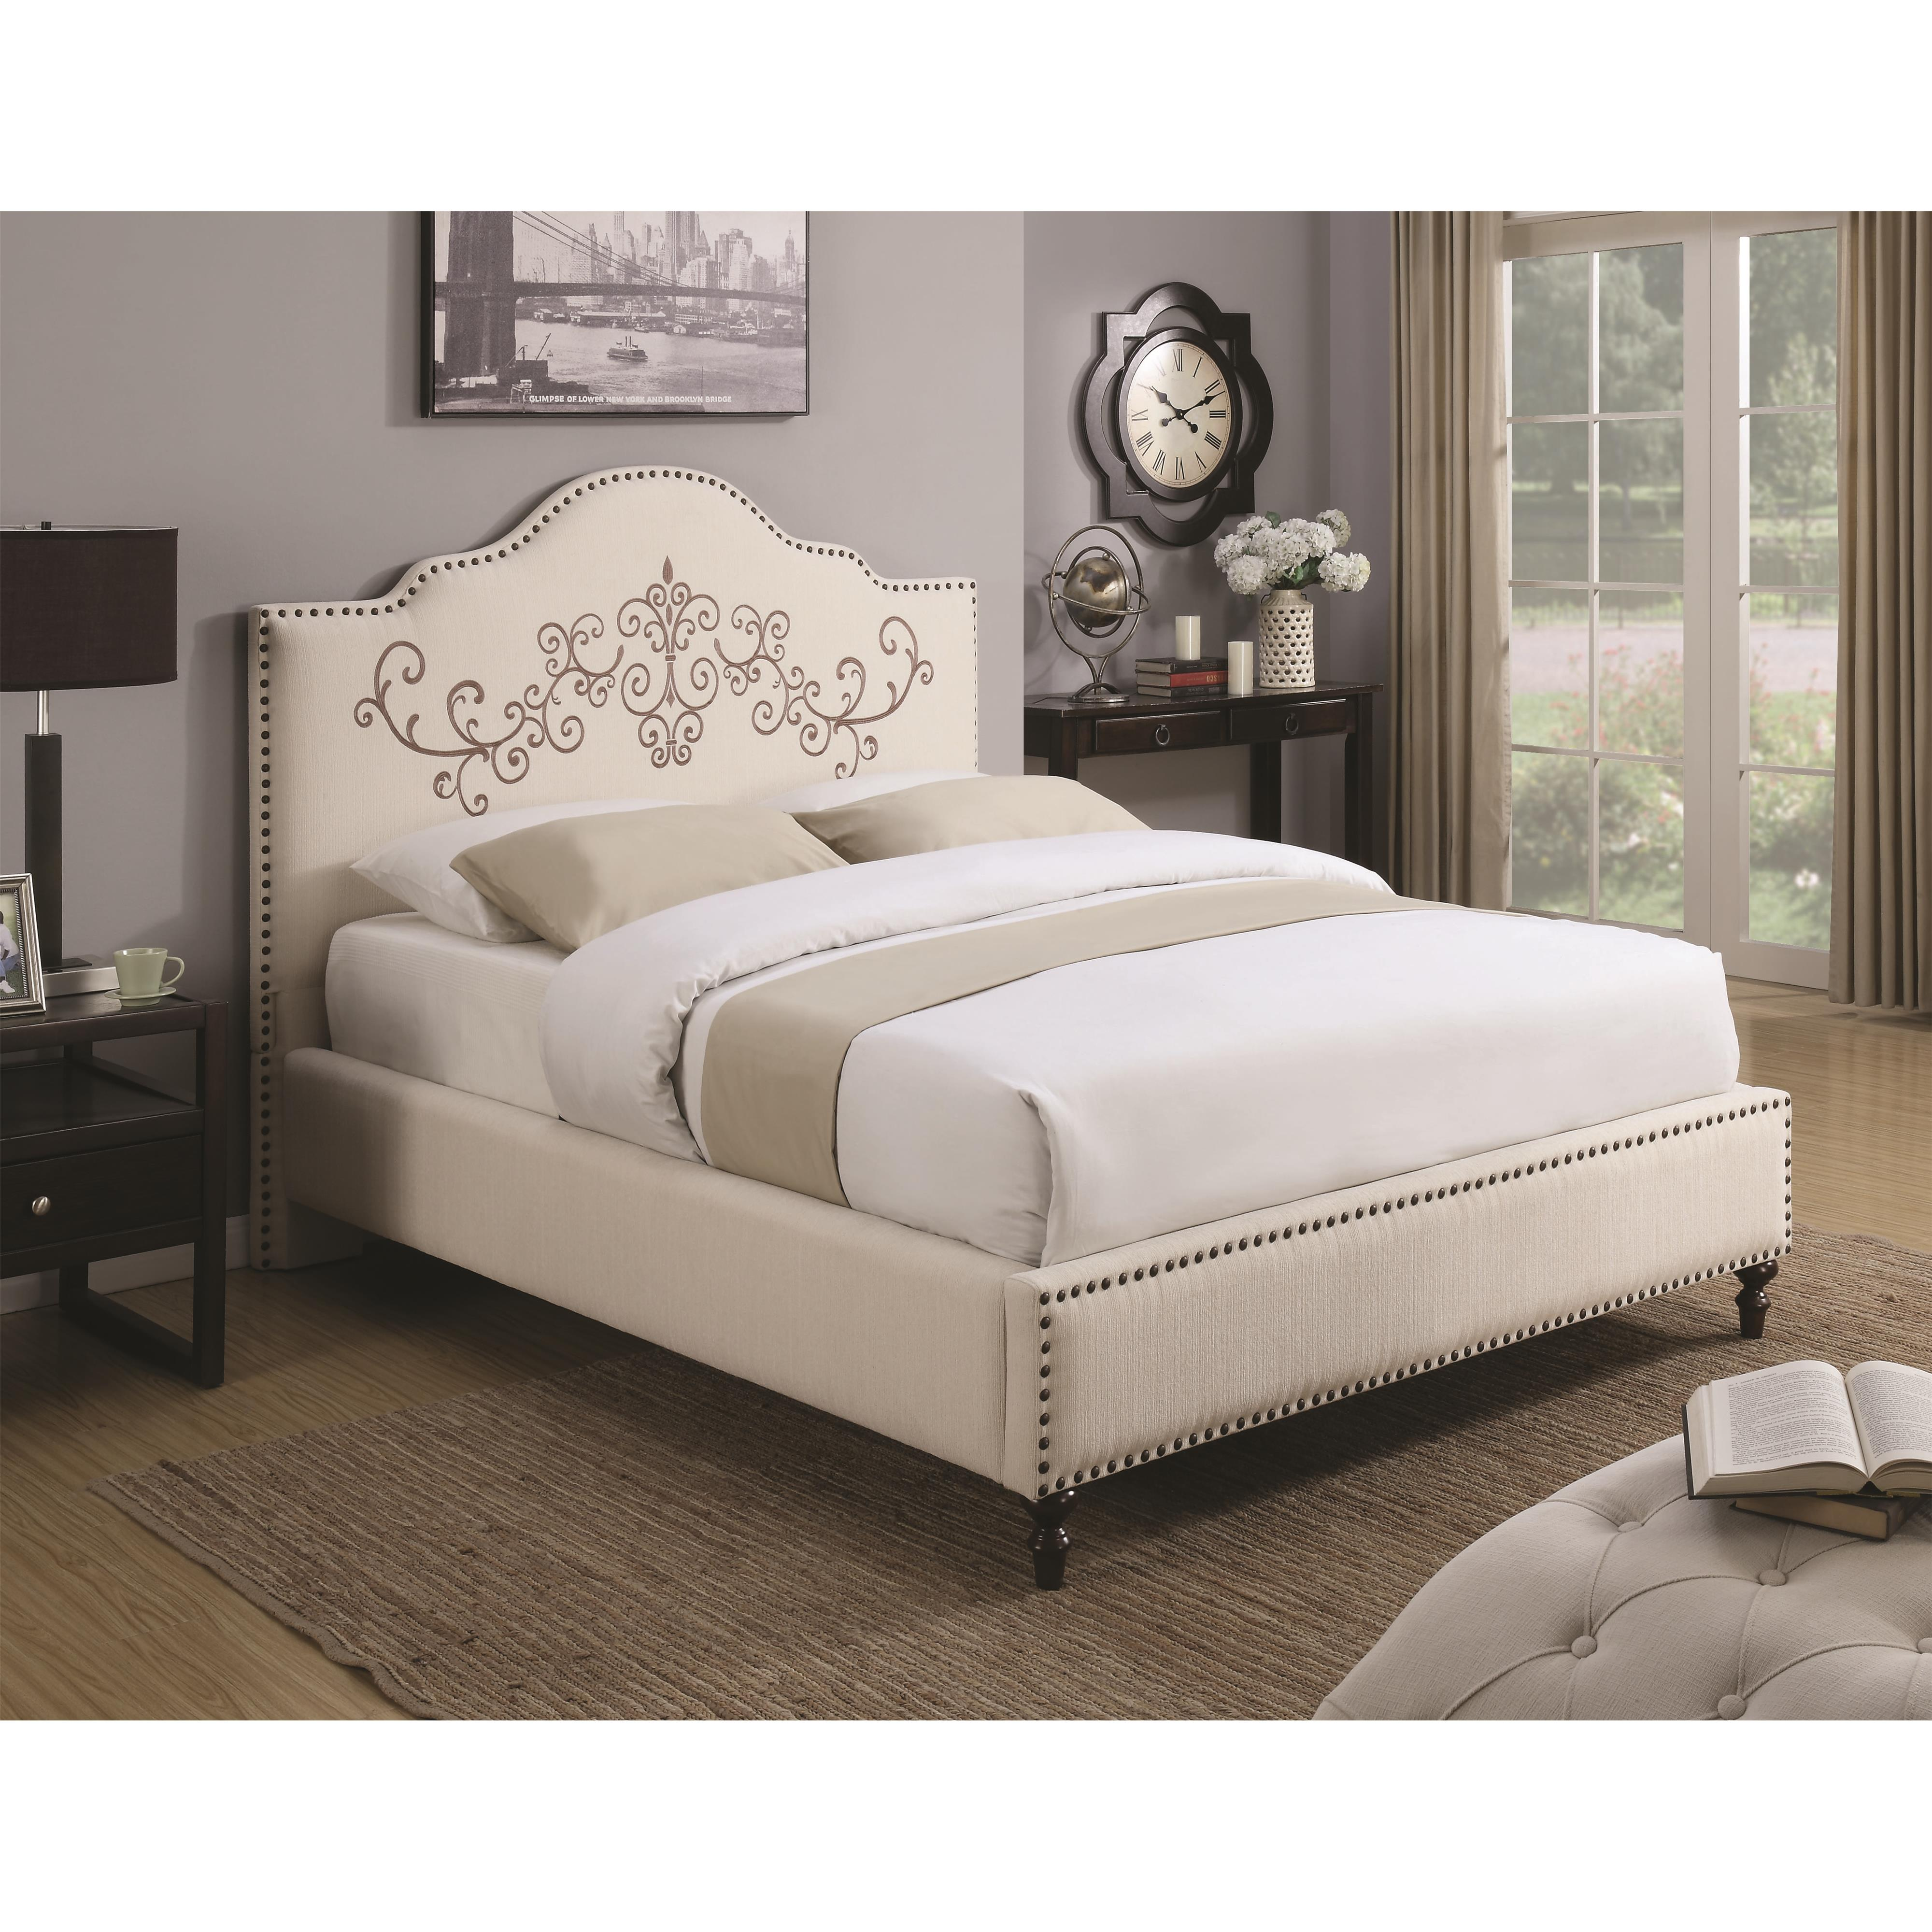 Coaster Homecrest Queen Bed - Item Number: 300491Q